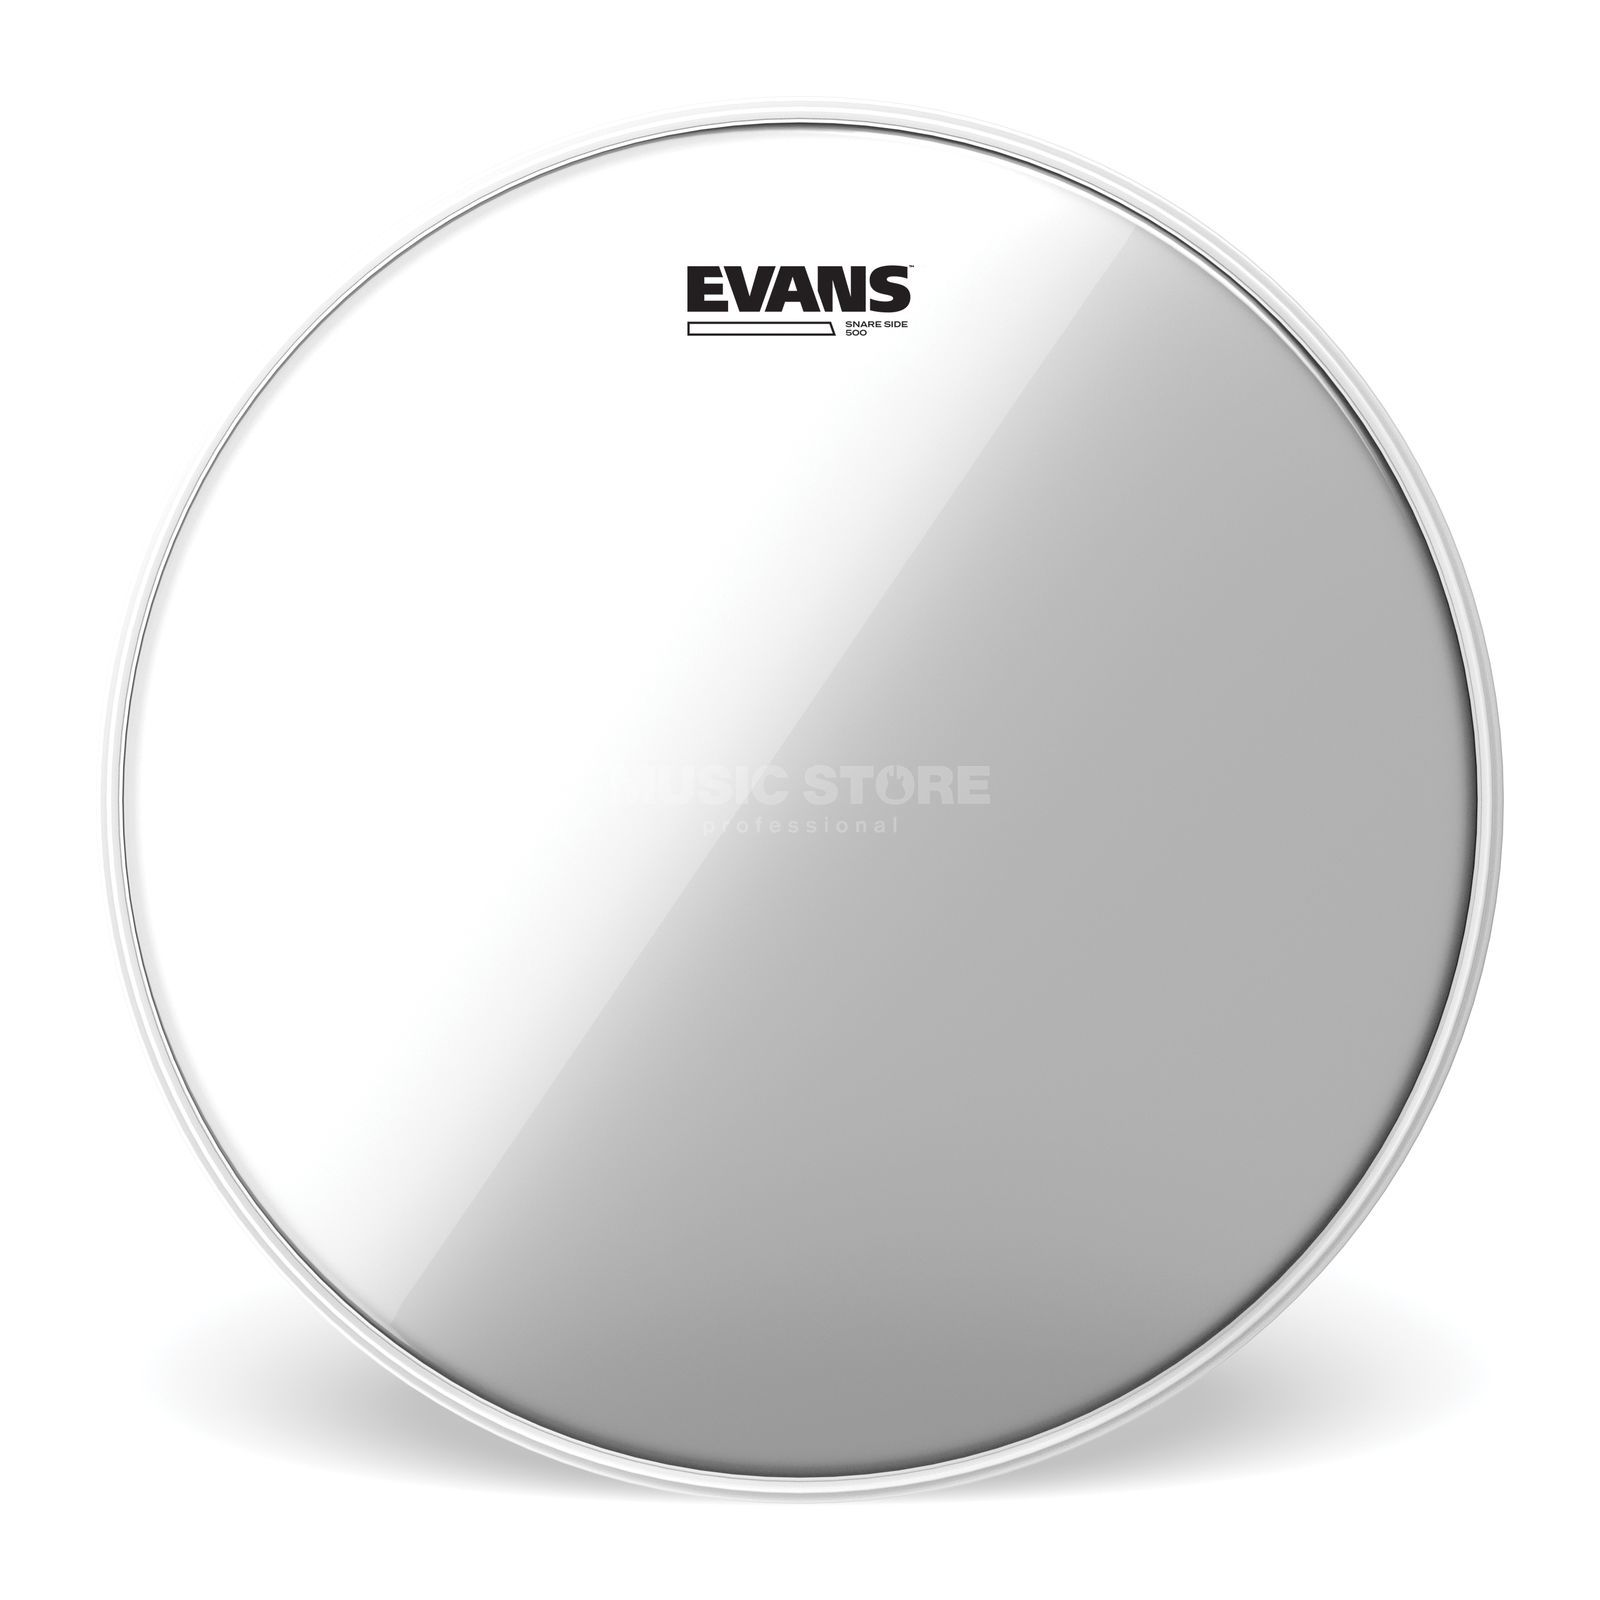 "Evans Glass 500, 13"", S13R50, Snare Reso Product Image"